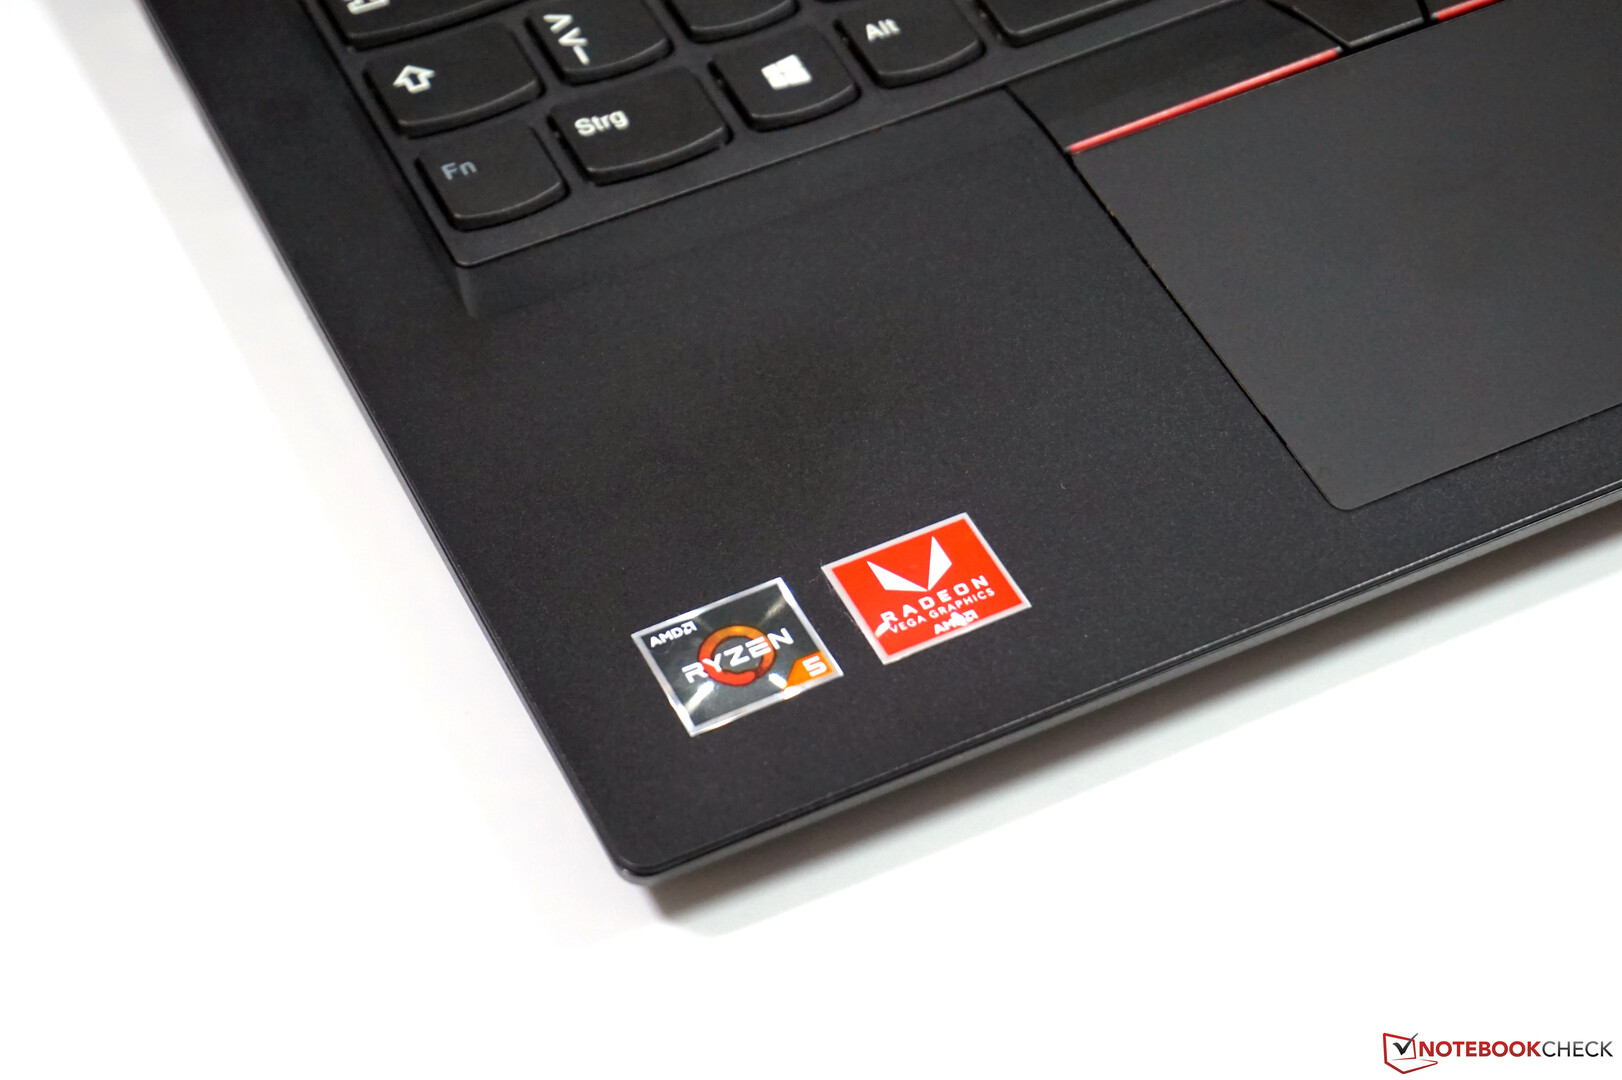 Lenovo ThinkPad E485 (Ryzen 5, Vega 8) Laptop Review